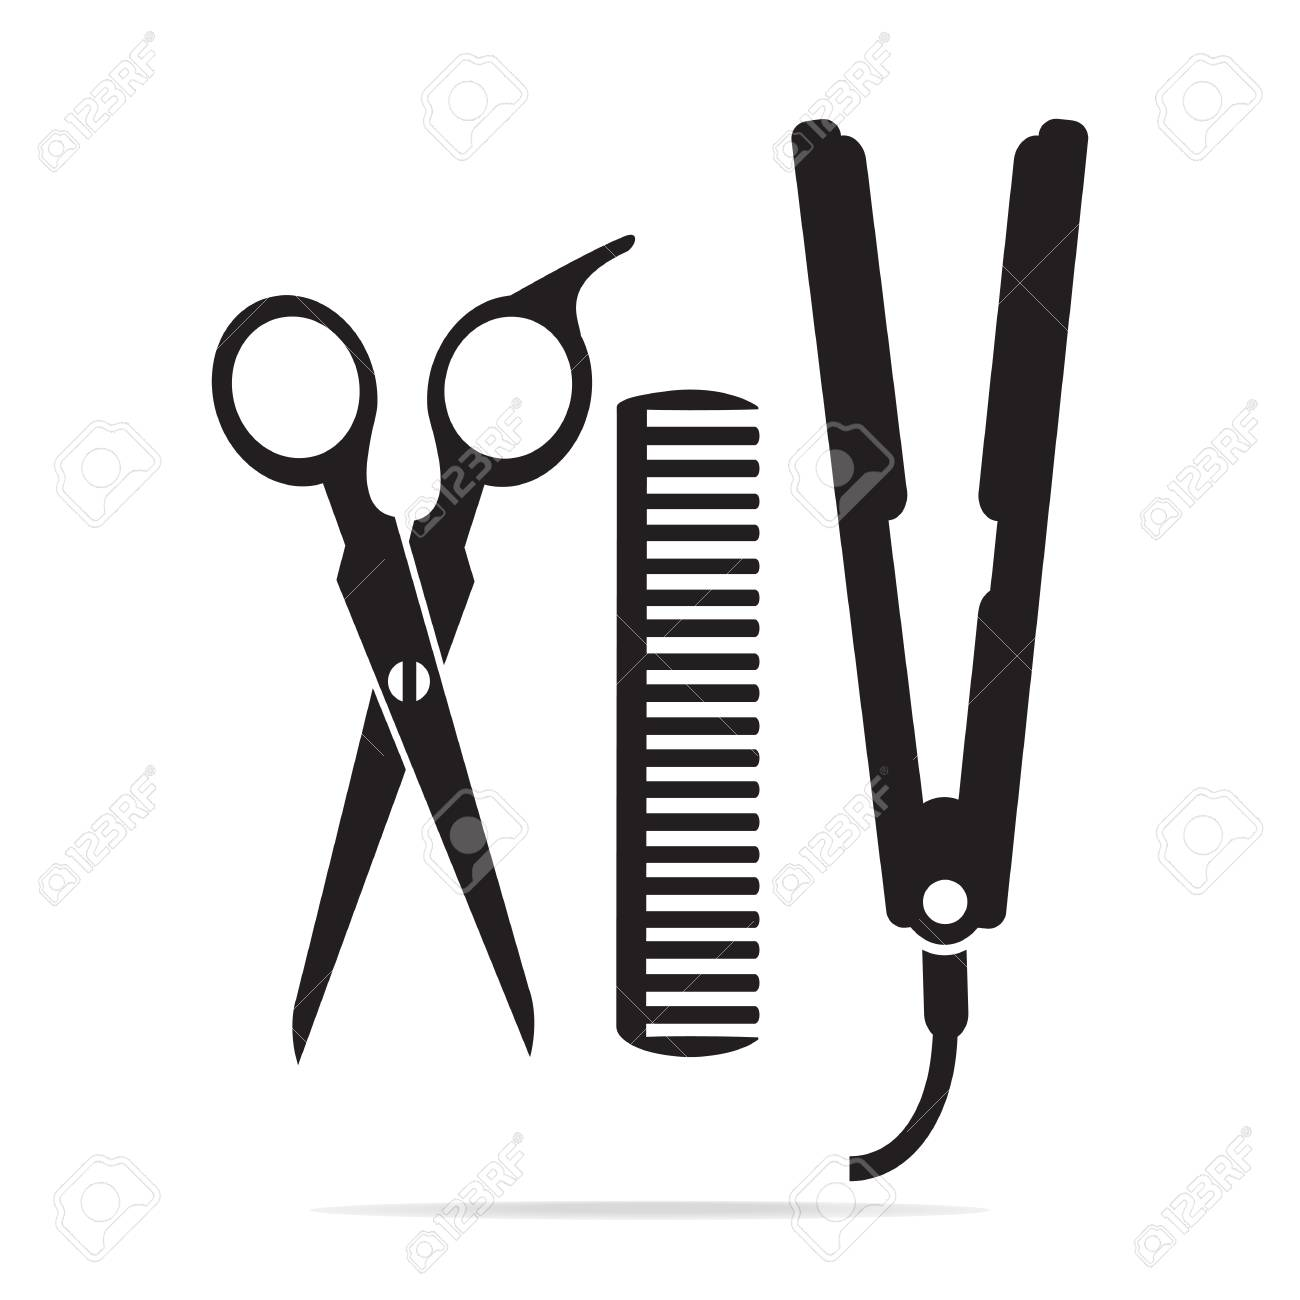 Hair salon with scissors, comb icon, curling iron icon.